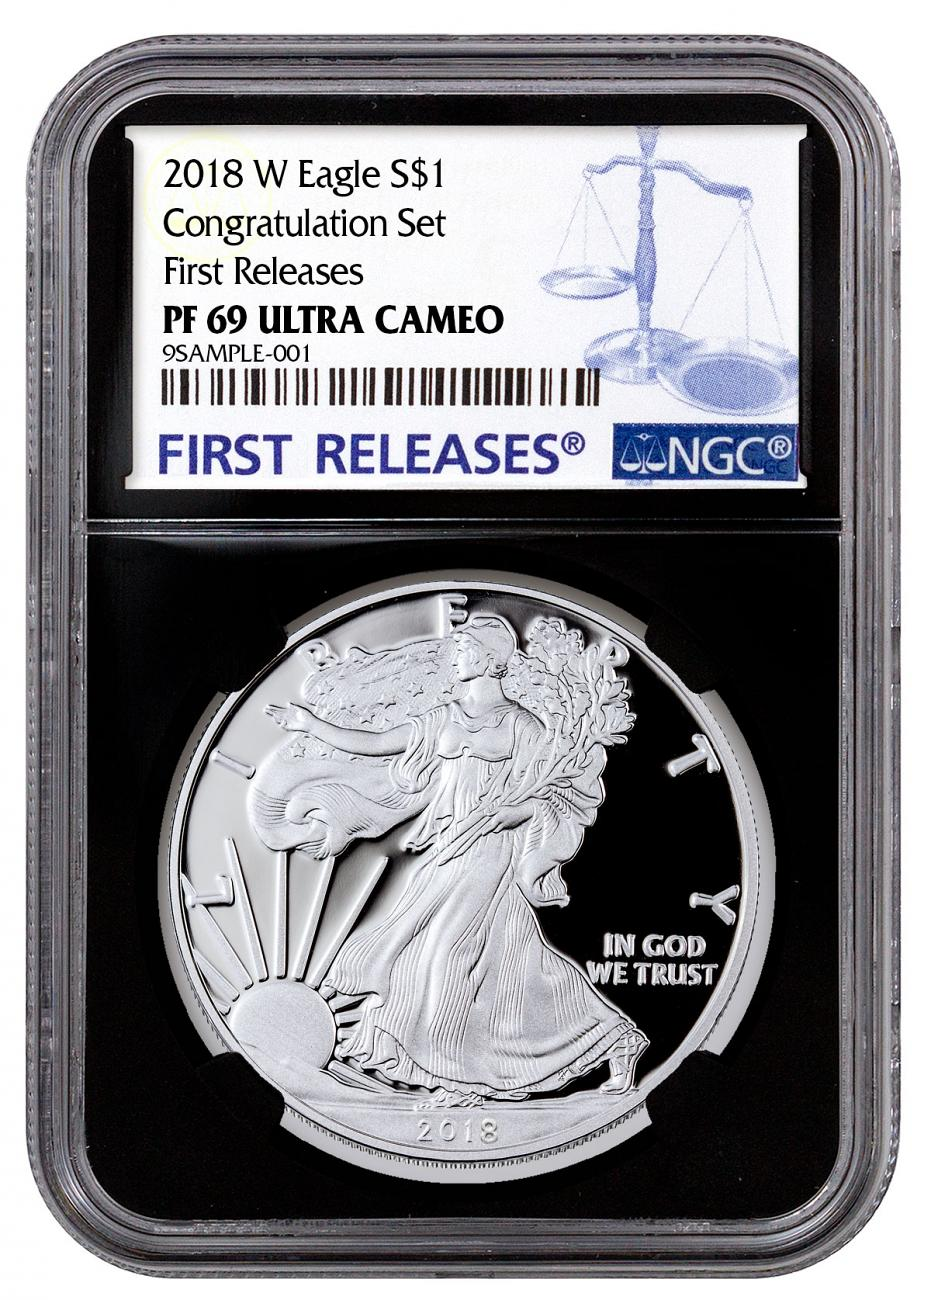 2018 W Proof American Silver Eagle Congratulations Set Ngc